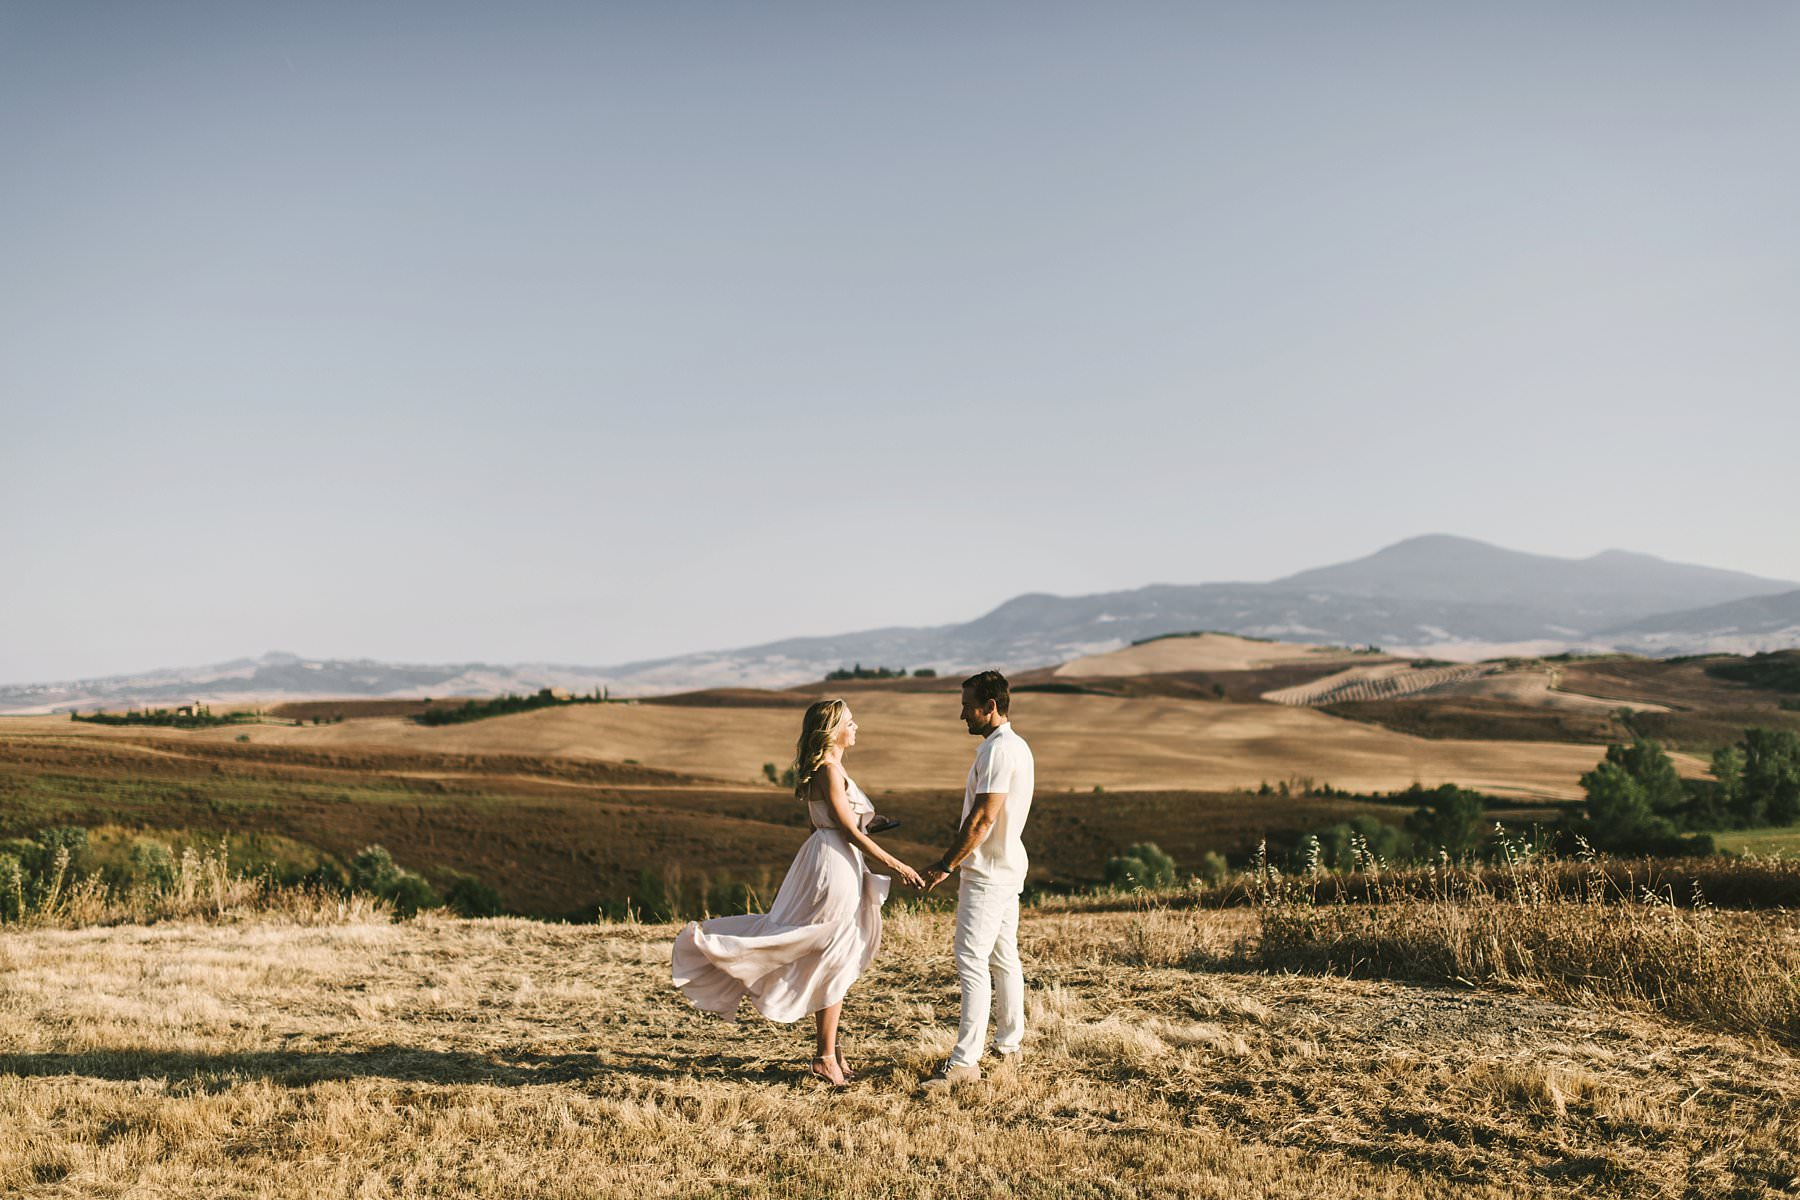 Dreamy Italy elopement with vows renewal in Val d'Orcia. Unforgettable background scenario for a very special occasion